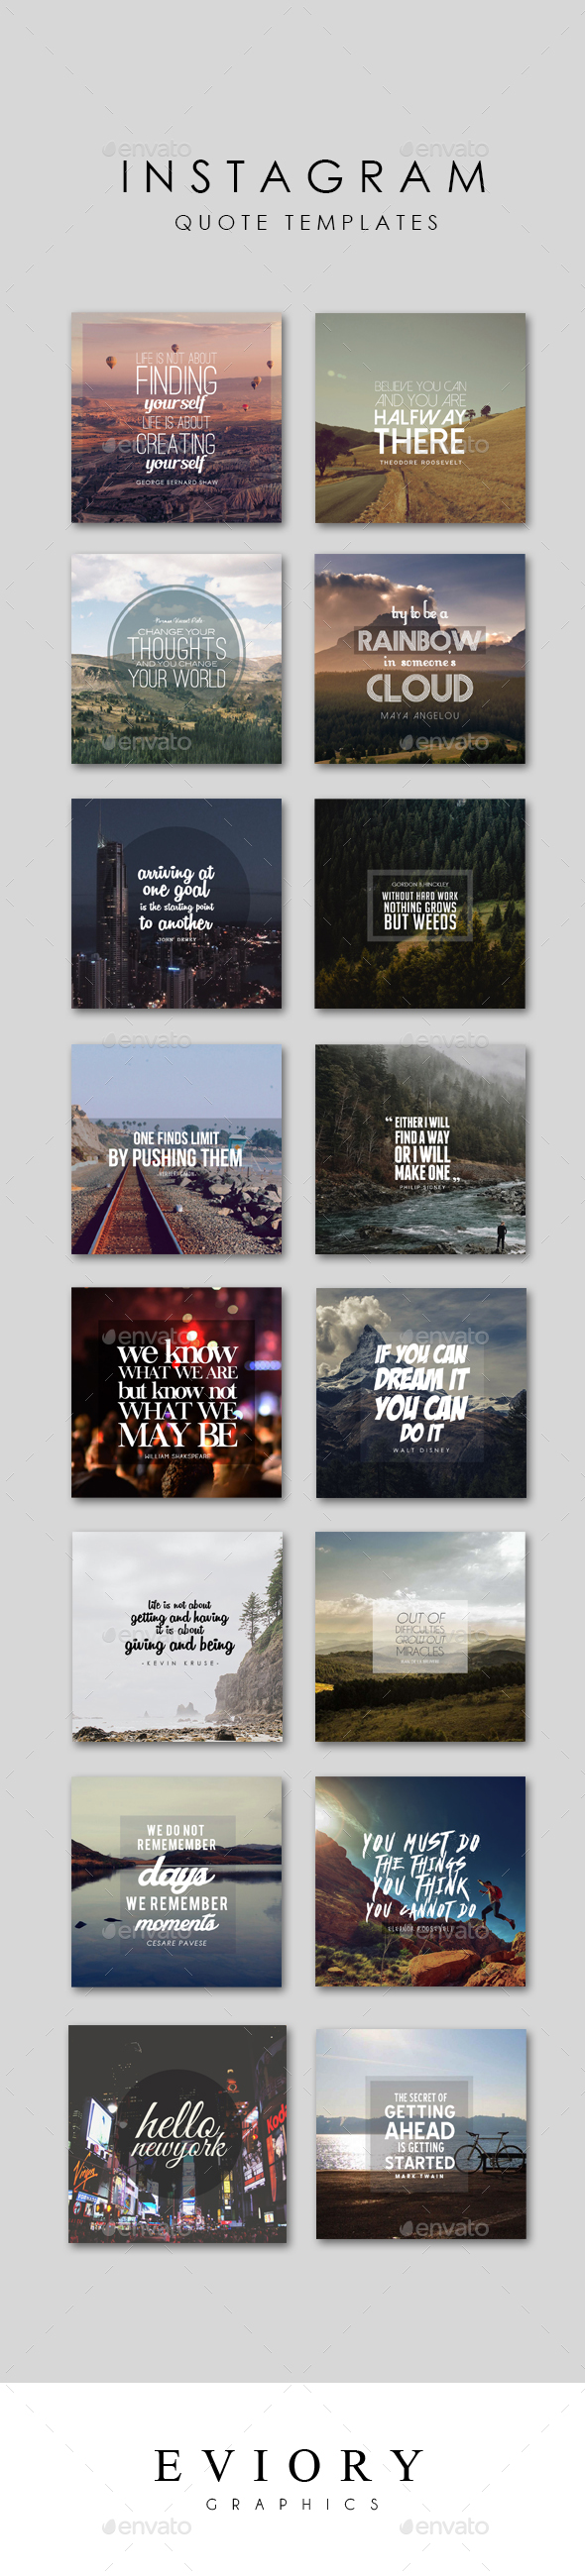 Instagram Quote Templates | Instagram quotes, Template and Social ...